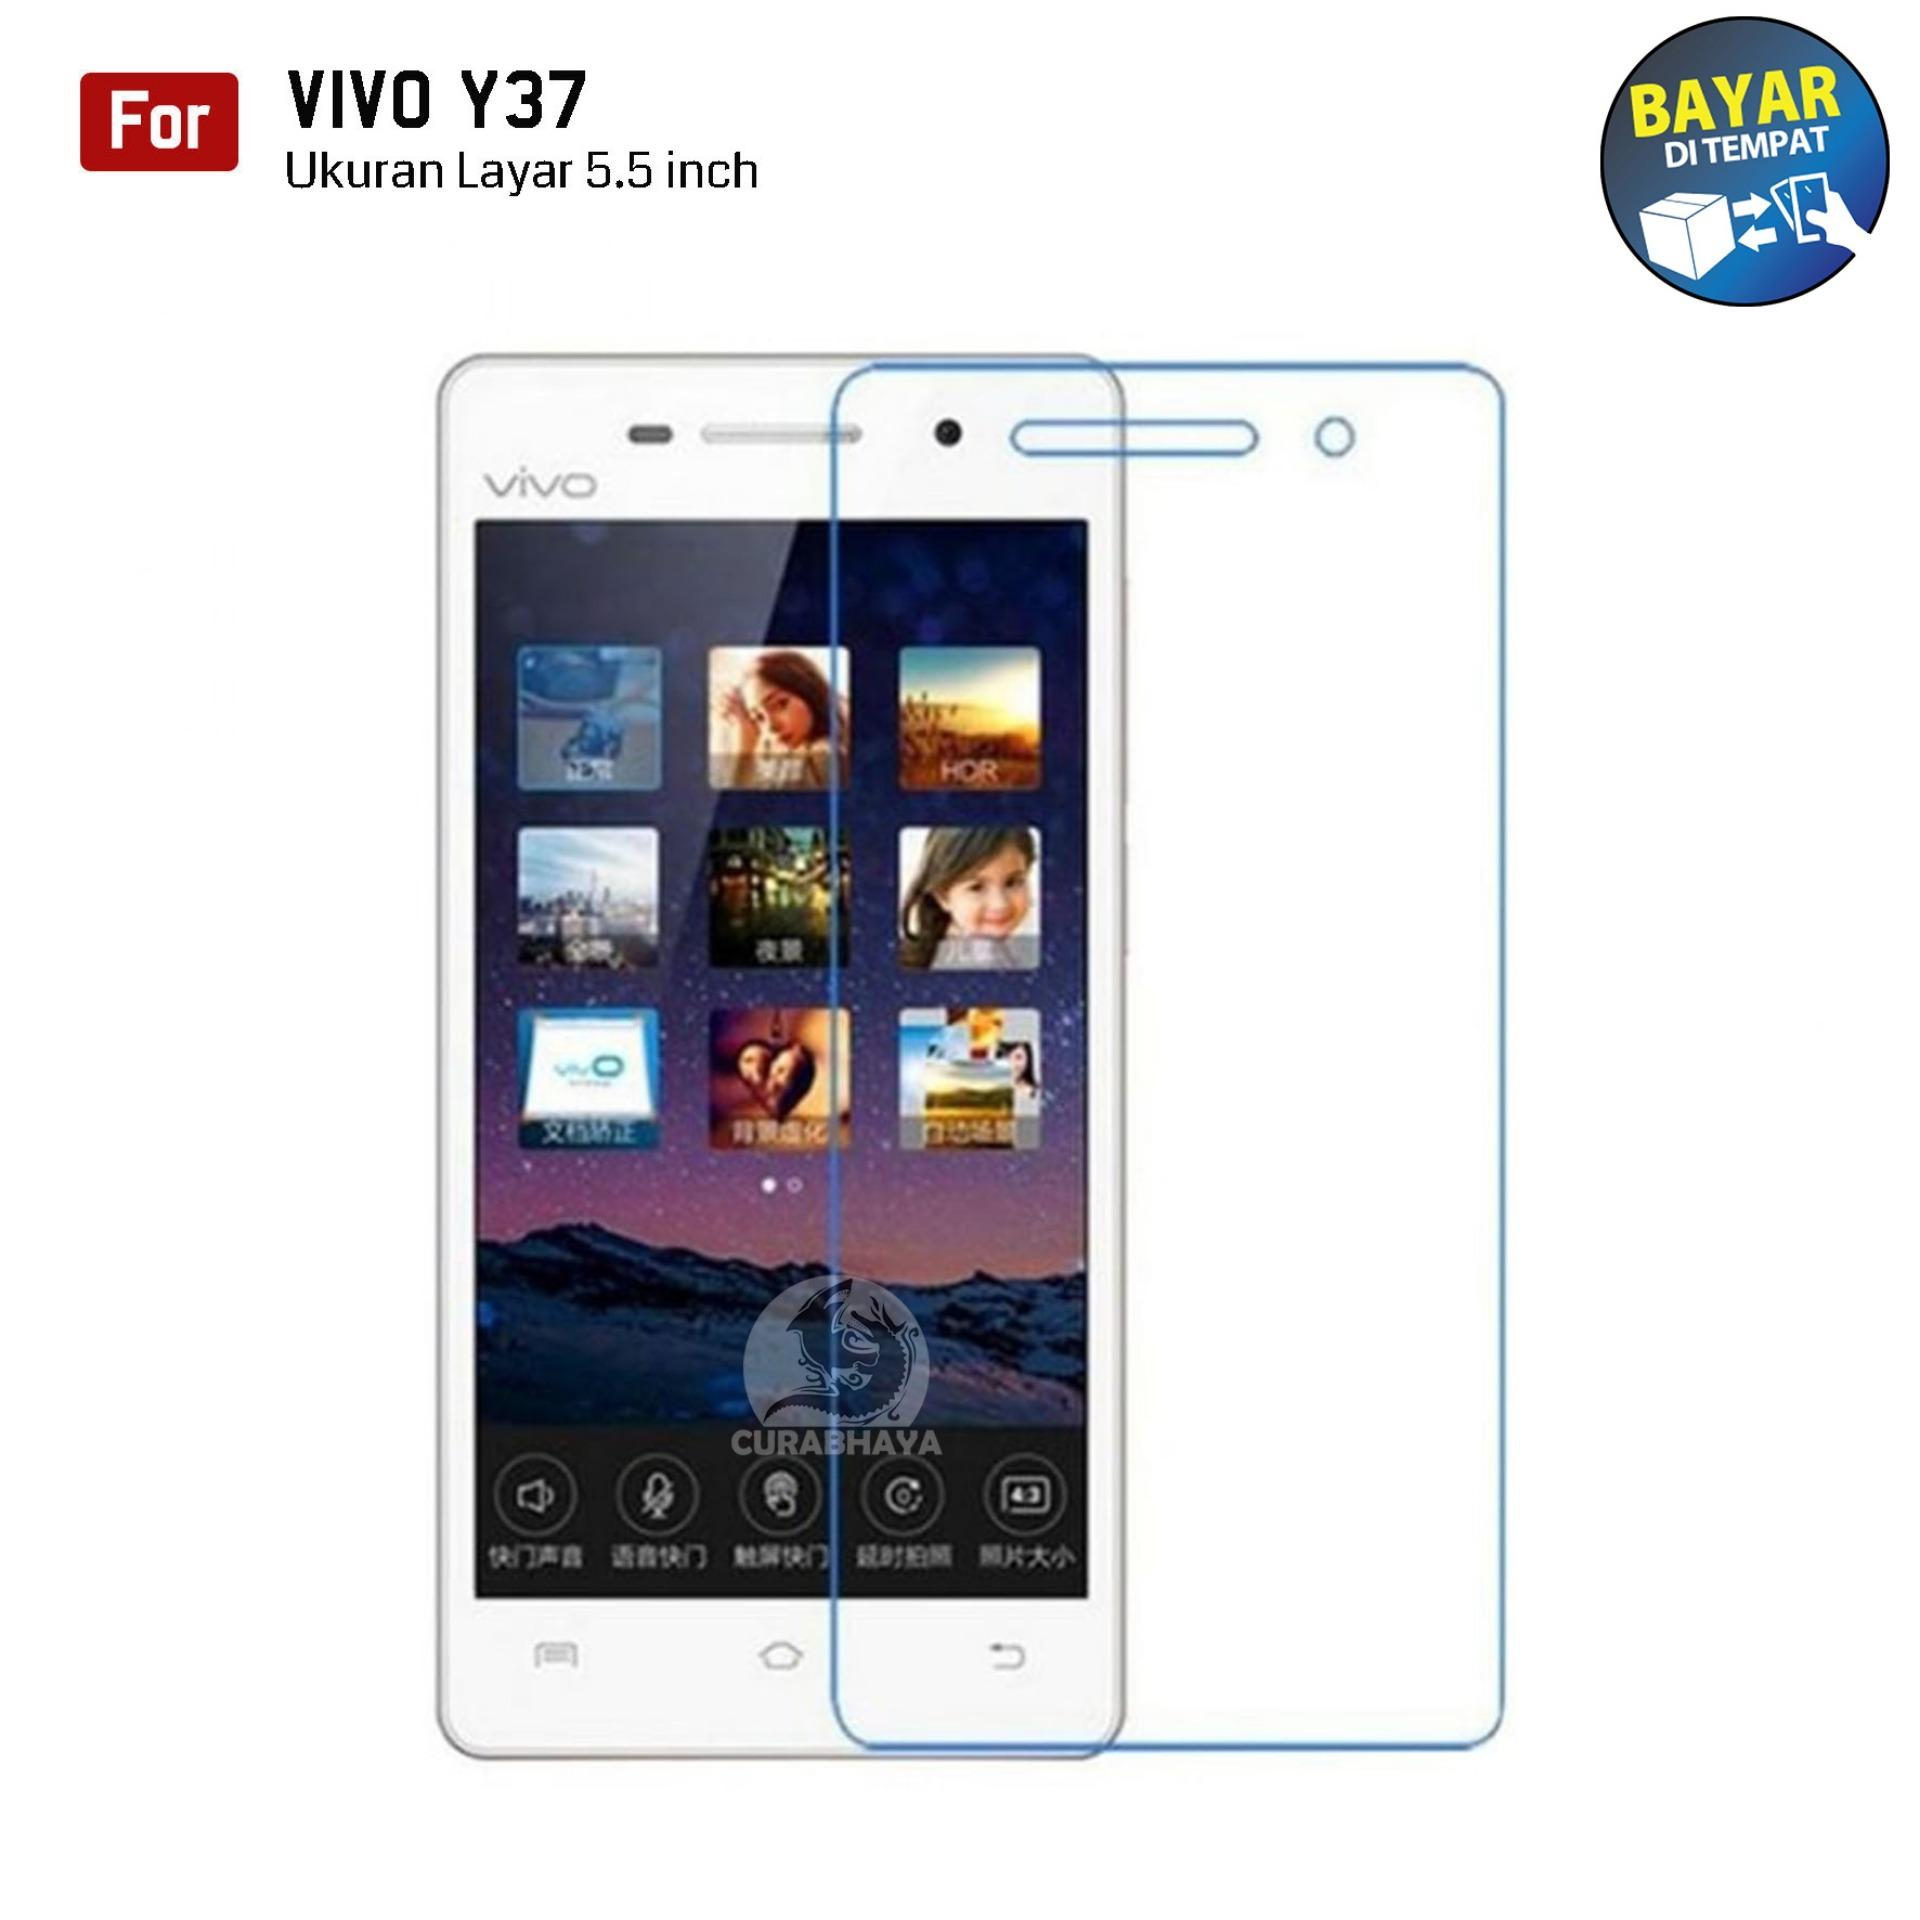 Aiueo Vivo V3 Tempered Glass Screen Protector 03mm Daftar Harga Iscreen Anti Gores Huawei Gr5 Clear